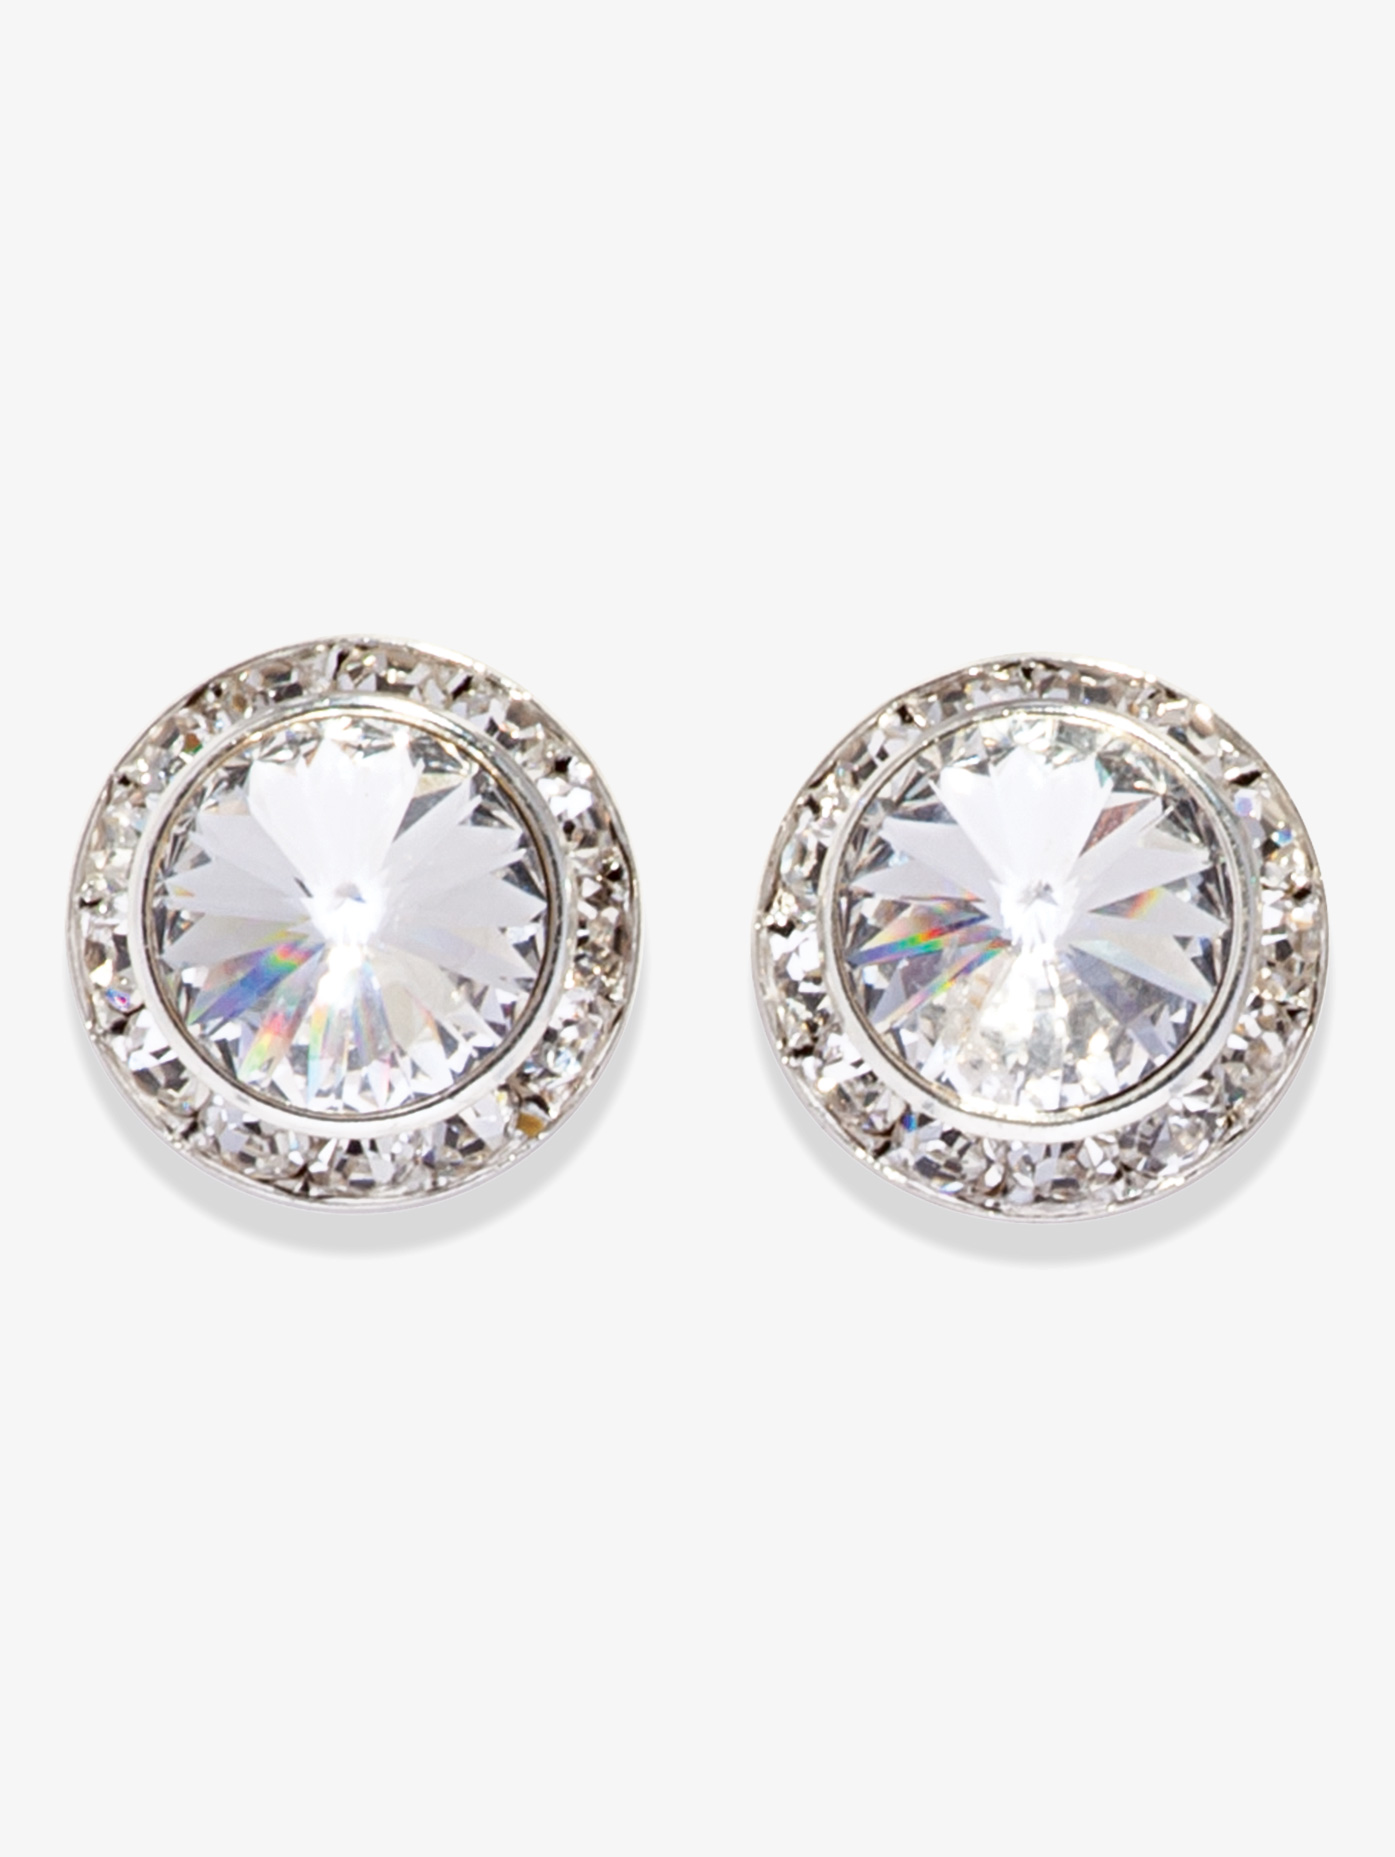 17MM Clip On Swarovski Crystal Earrings - Style No 2710C. Loading zoom 49f038d2b